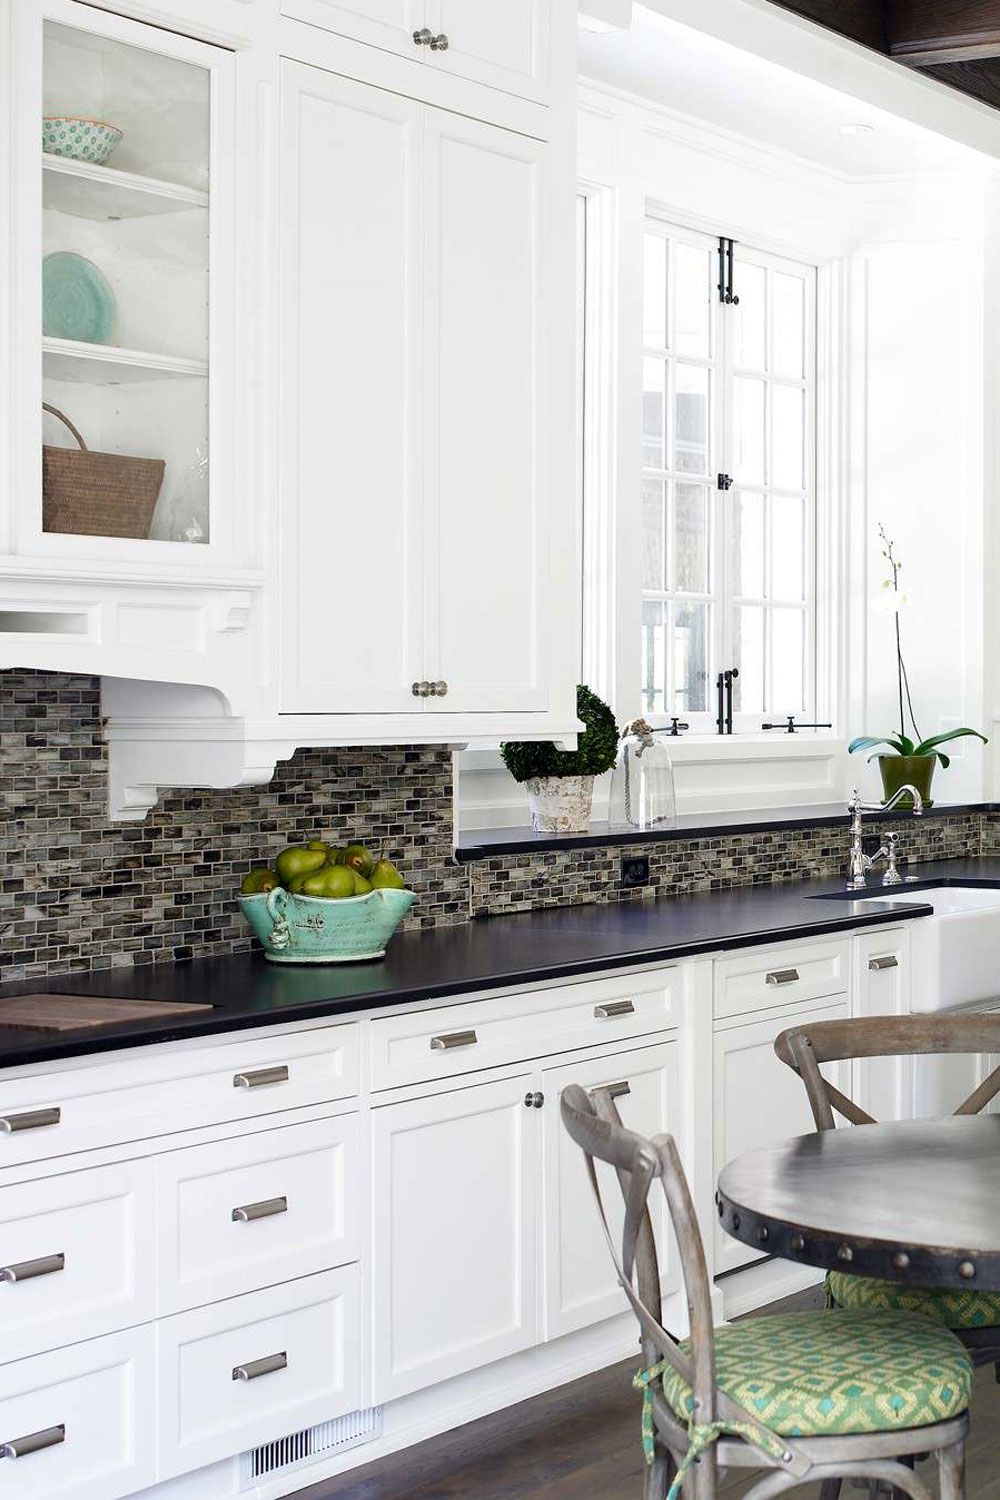 50+ Black Countertop Backsplash Ideas (Tile Designs, Tips ... on Backsplash Ideas With Black Countertops  id=49347